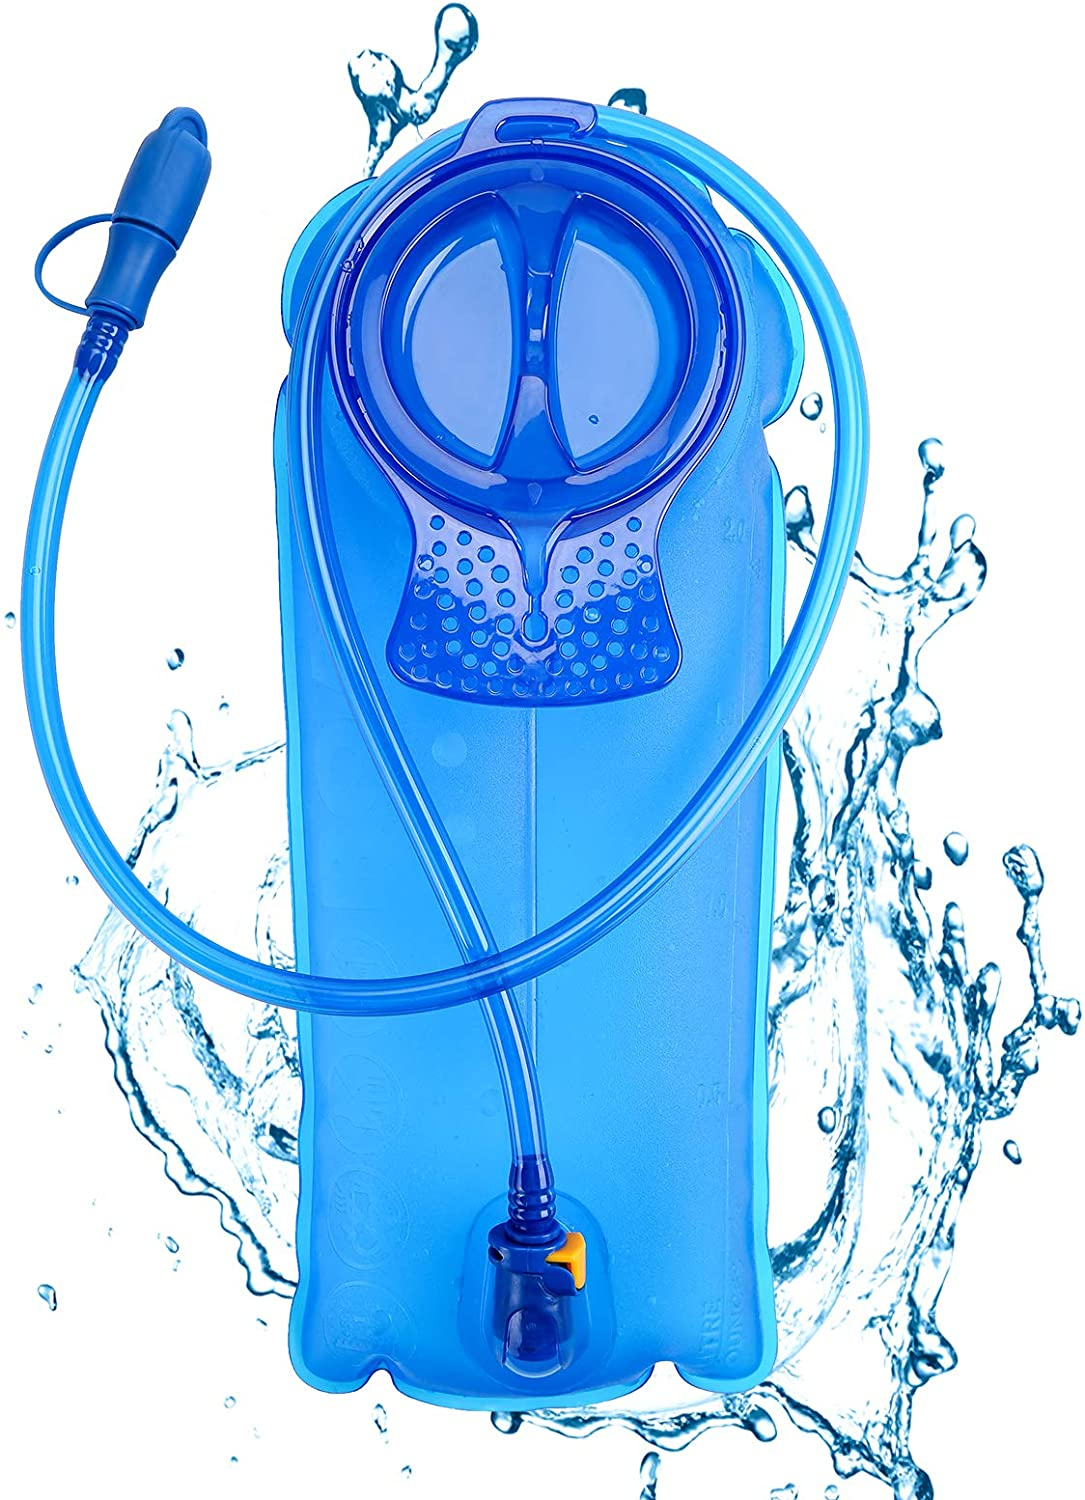 Special price for a limited time Seasonal Wrap Introduction BQA Hydration Water Bladder Reservoir Biking Climbing Hiking for